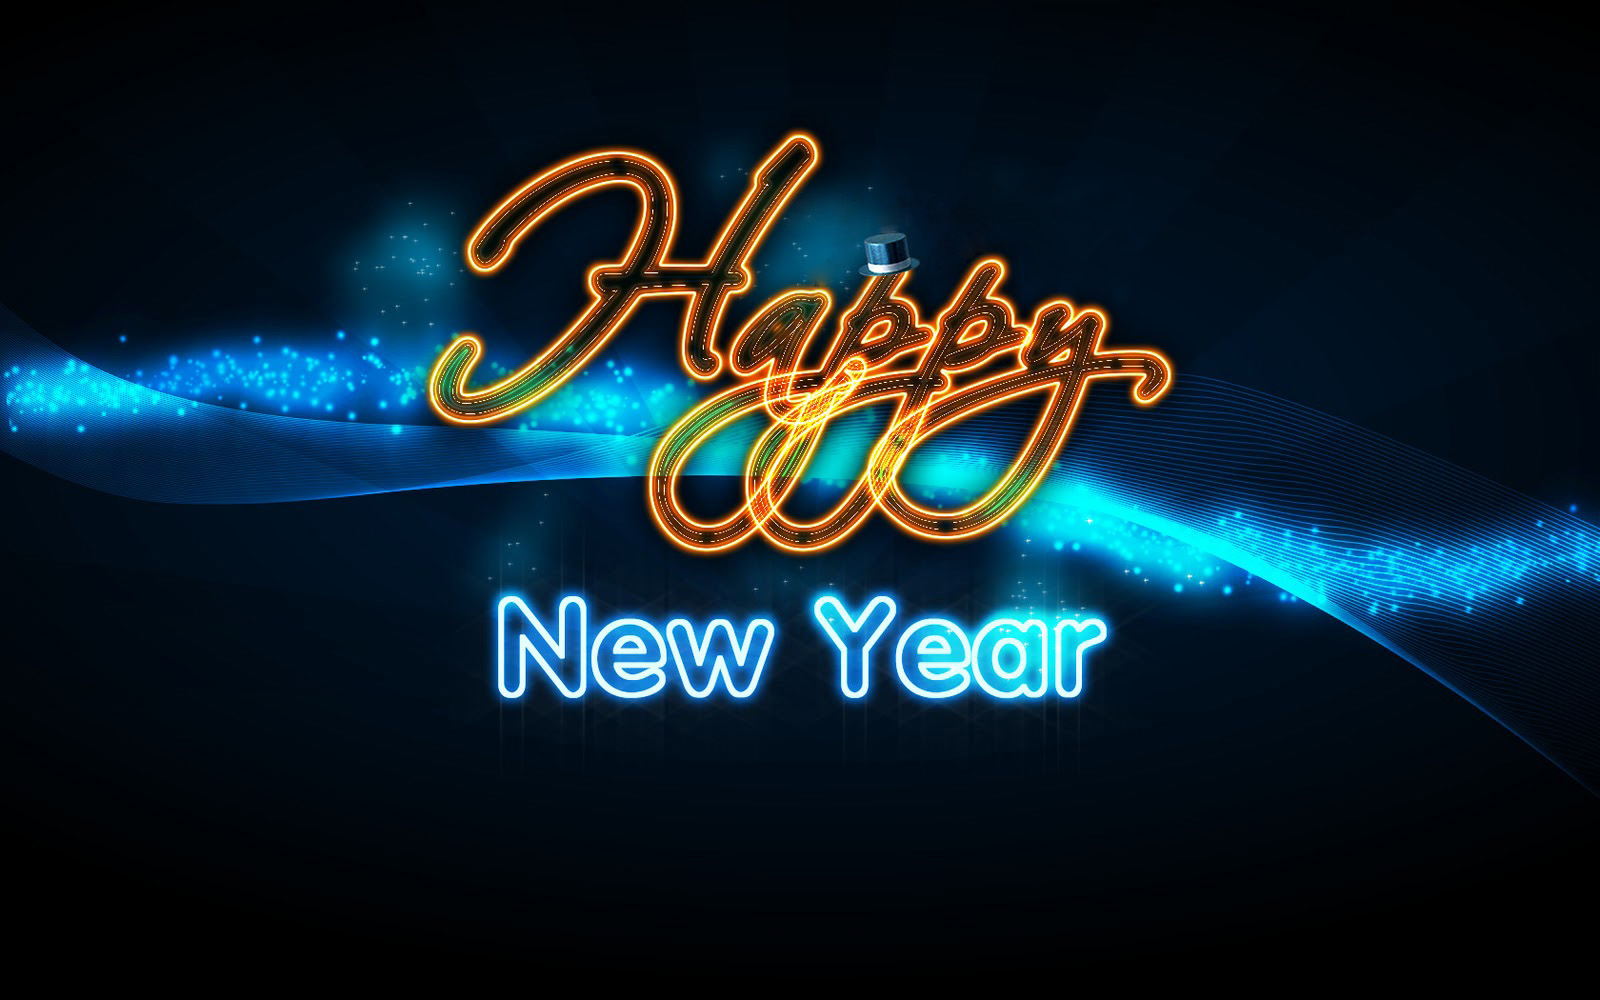 Abstract Free Free 2014 Happy New Year Wallpaper Wallpaper